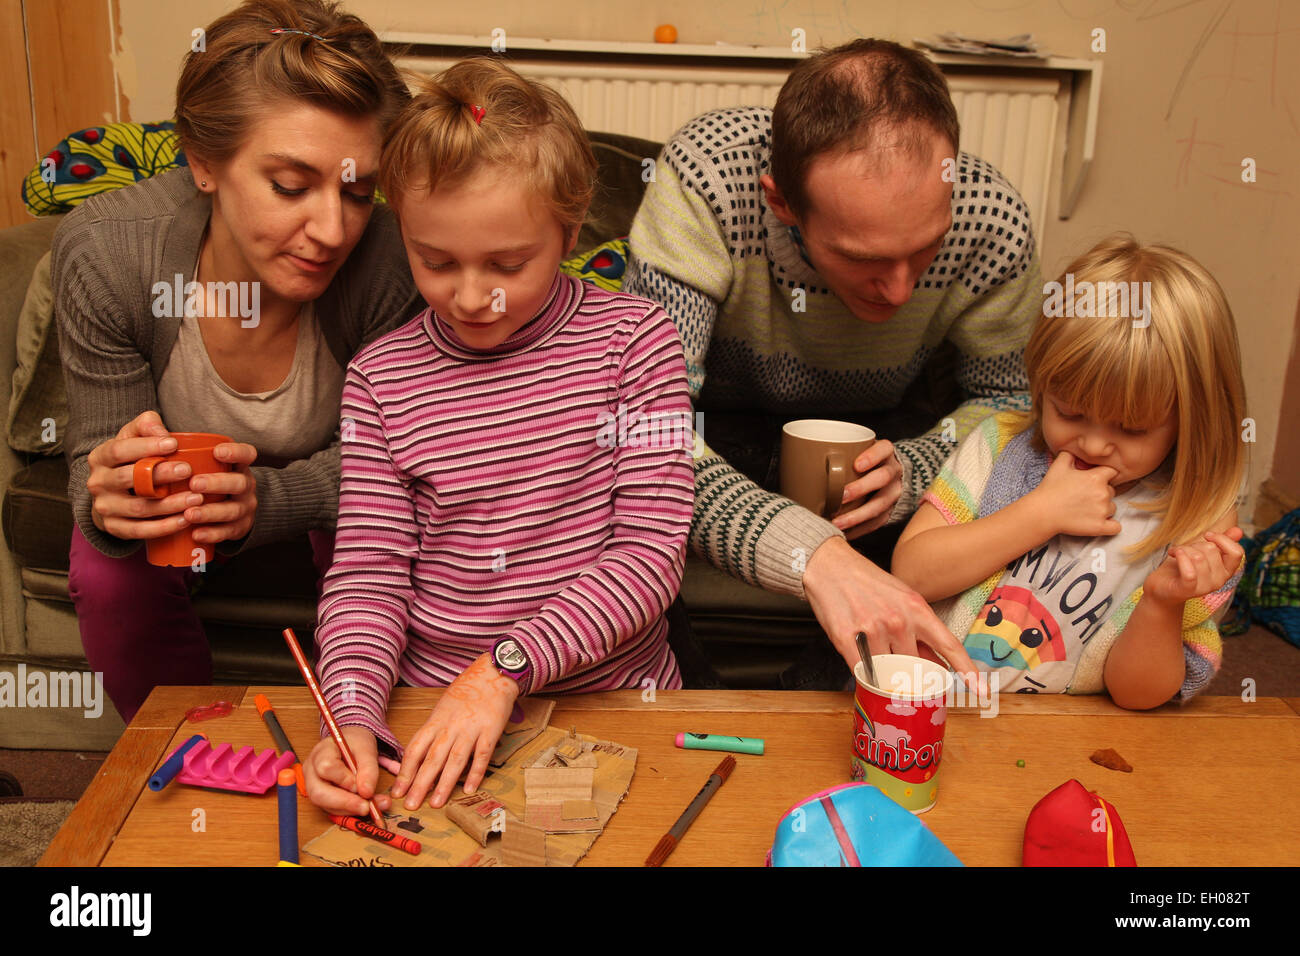 Parents and children crafting - Stock Image